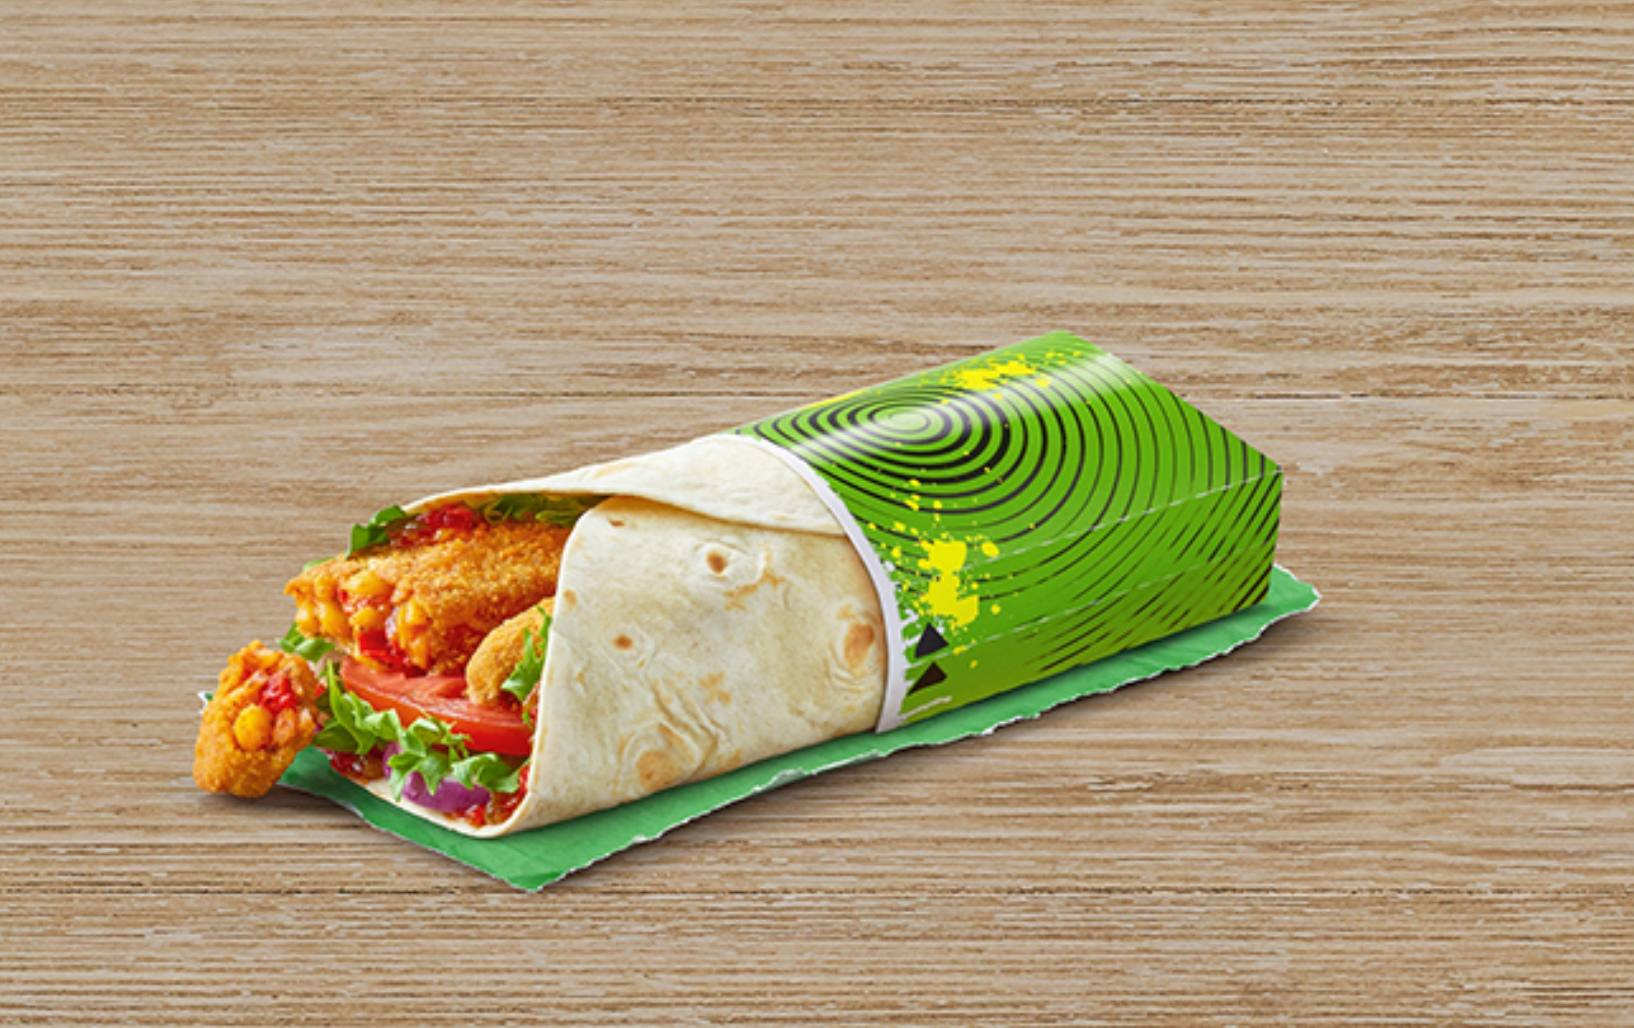 McDonald's vegan wrap